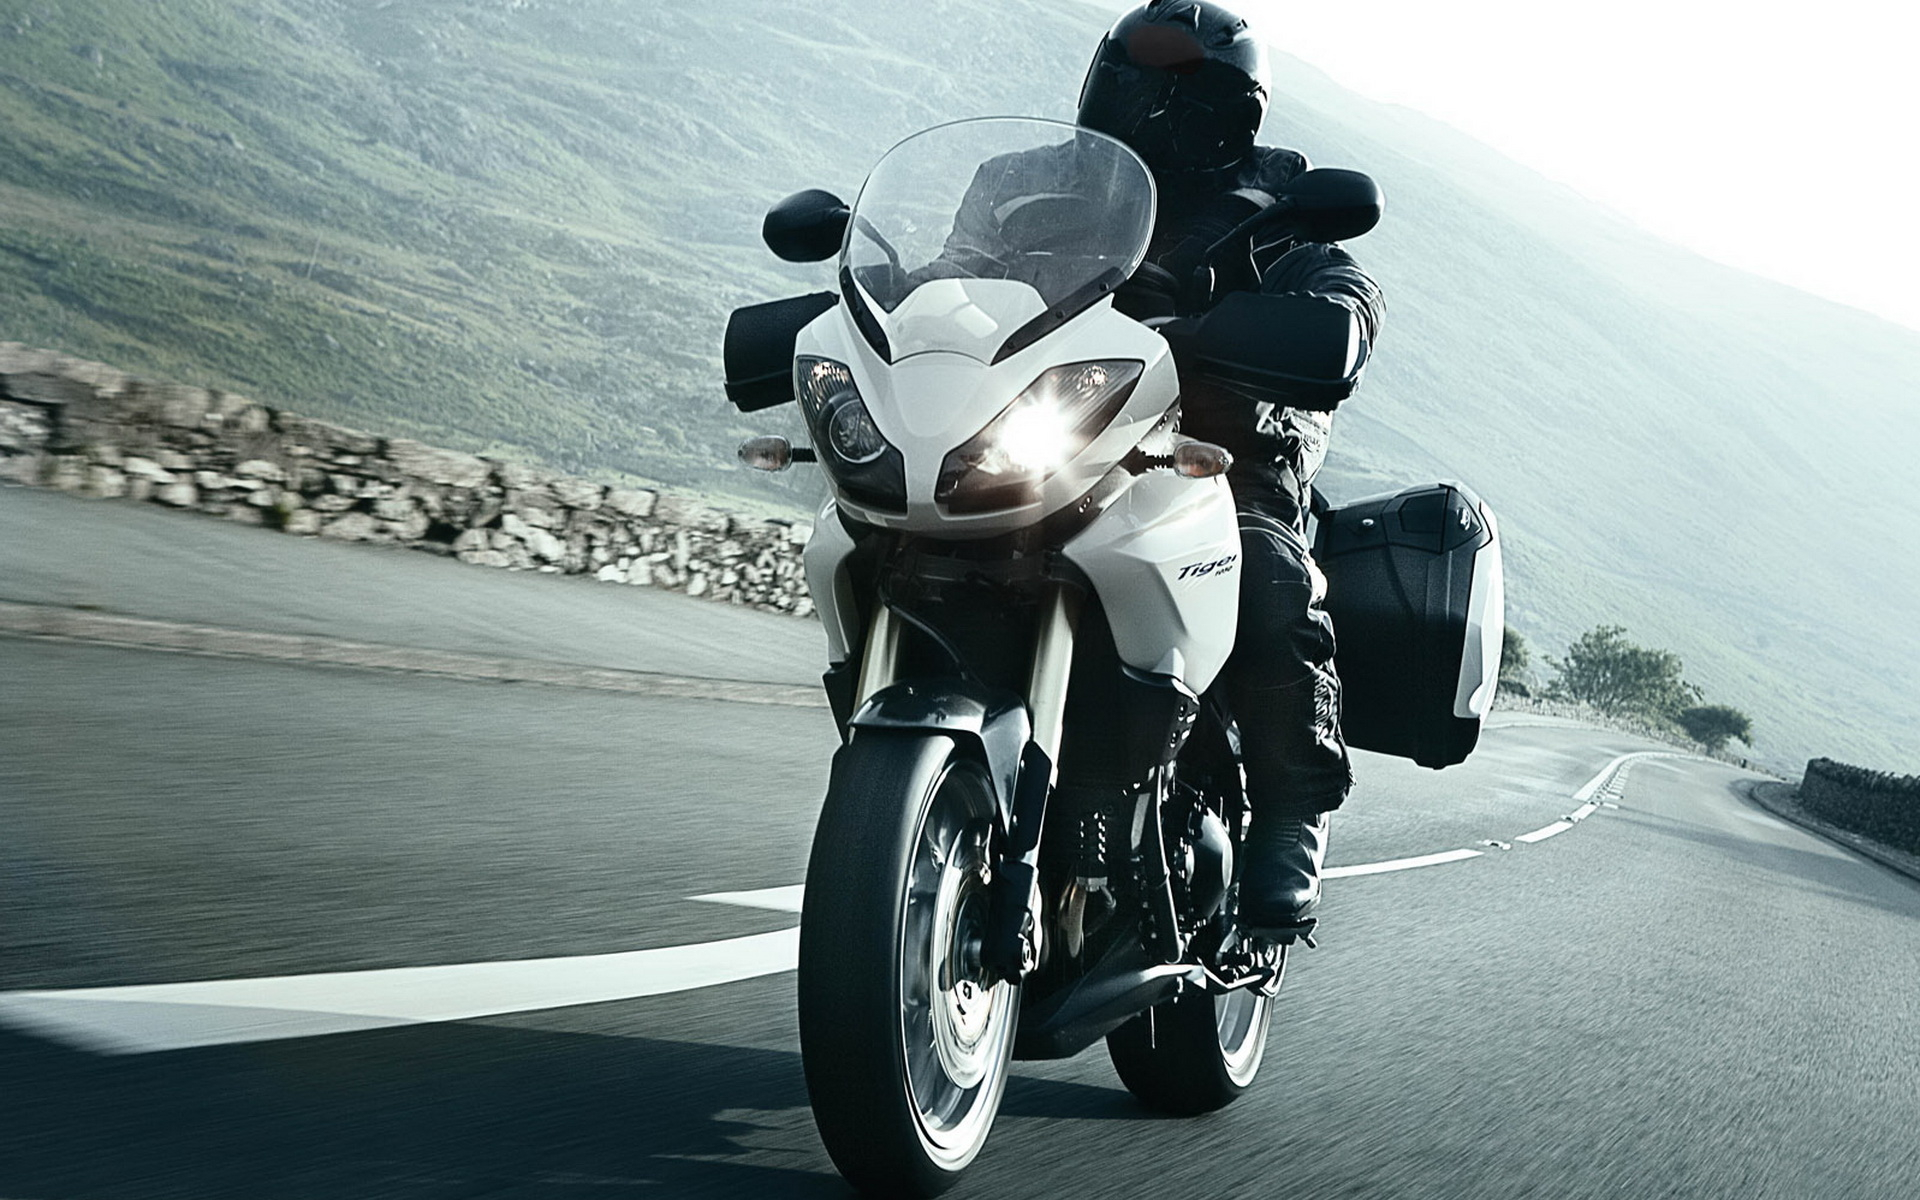 Triumph Tiger wallpapers and images 1920x1200